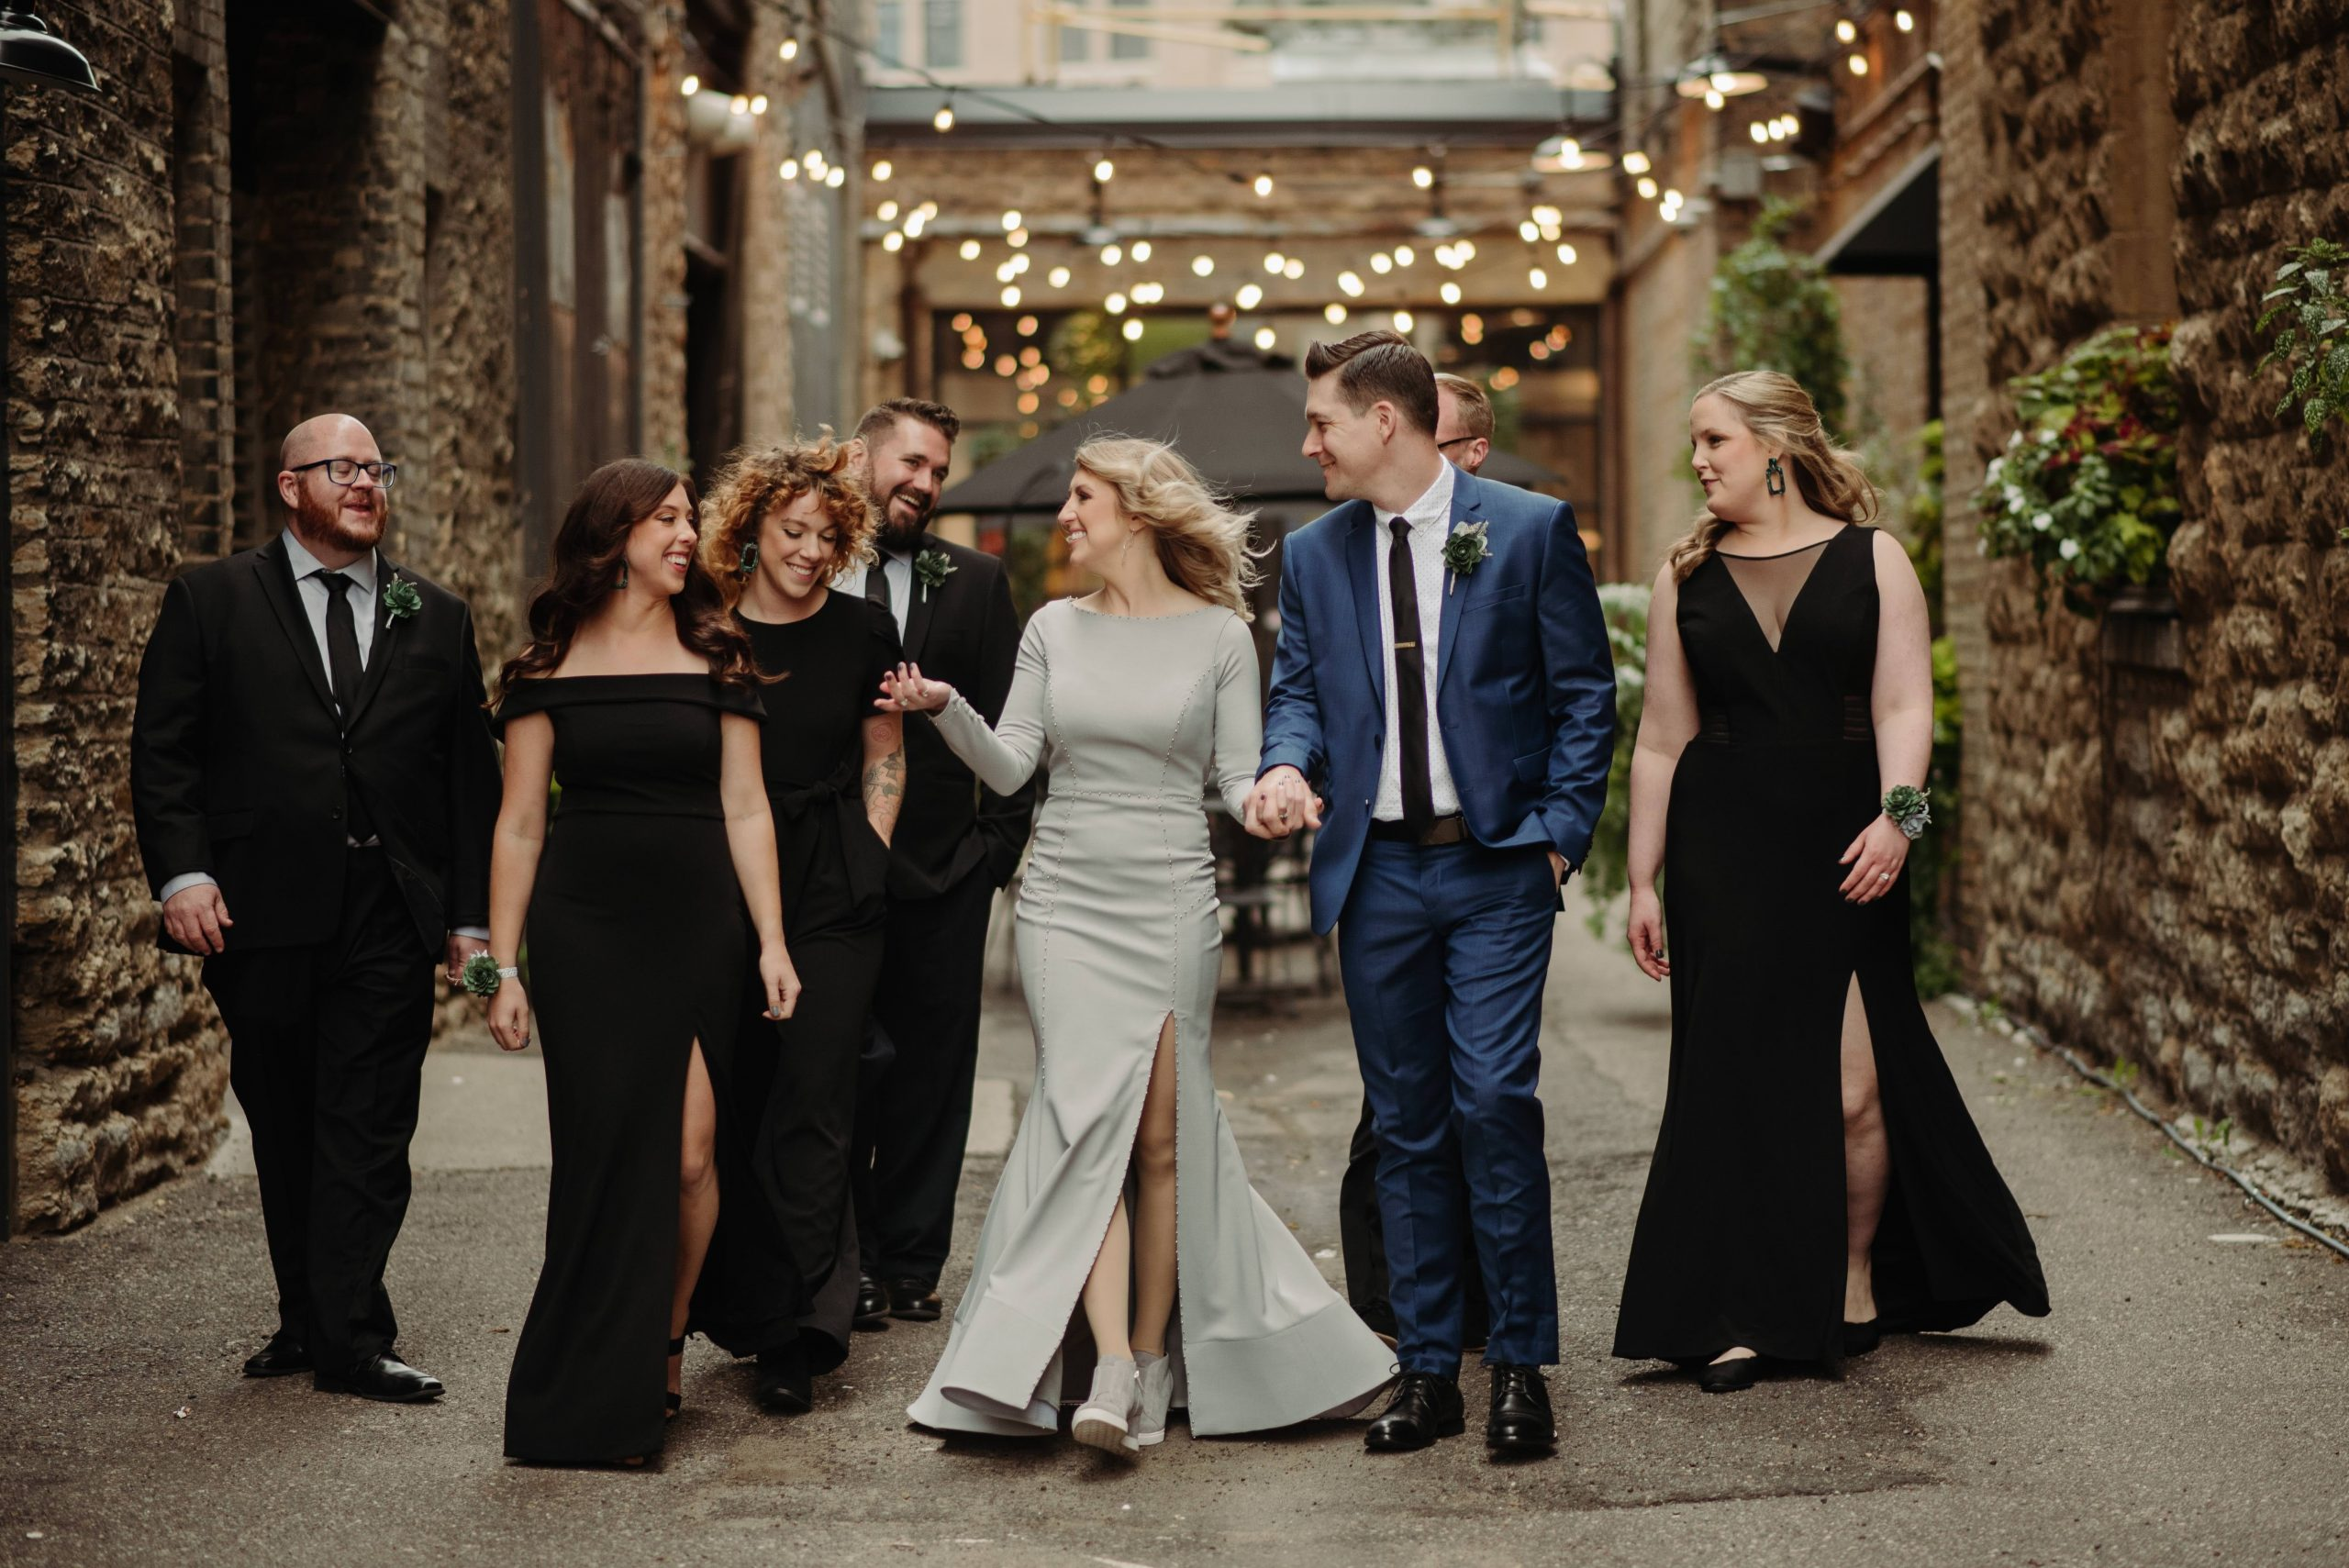 wedding party walking down alleyway hewing hotel minneapolis minnesota